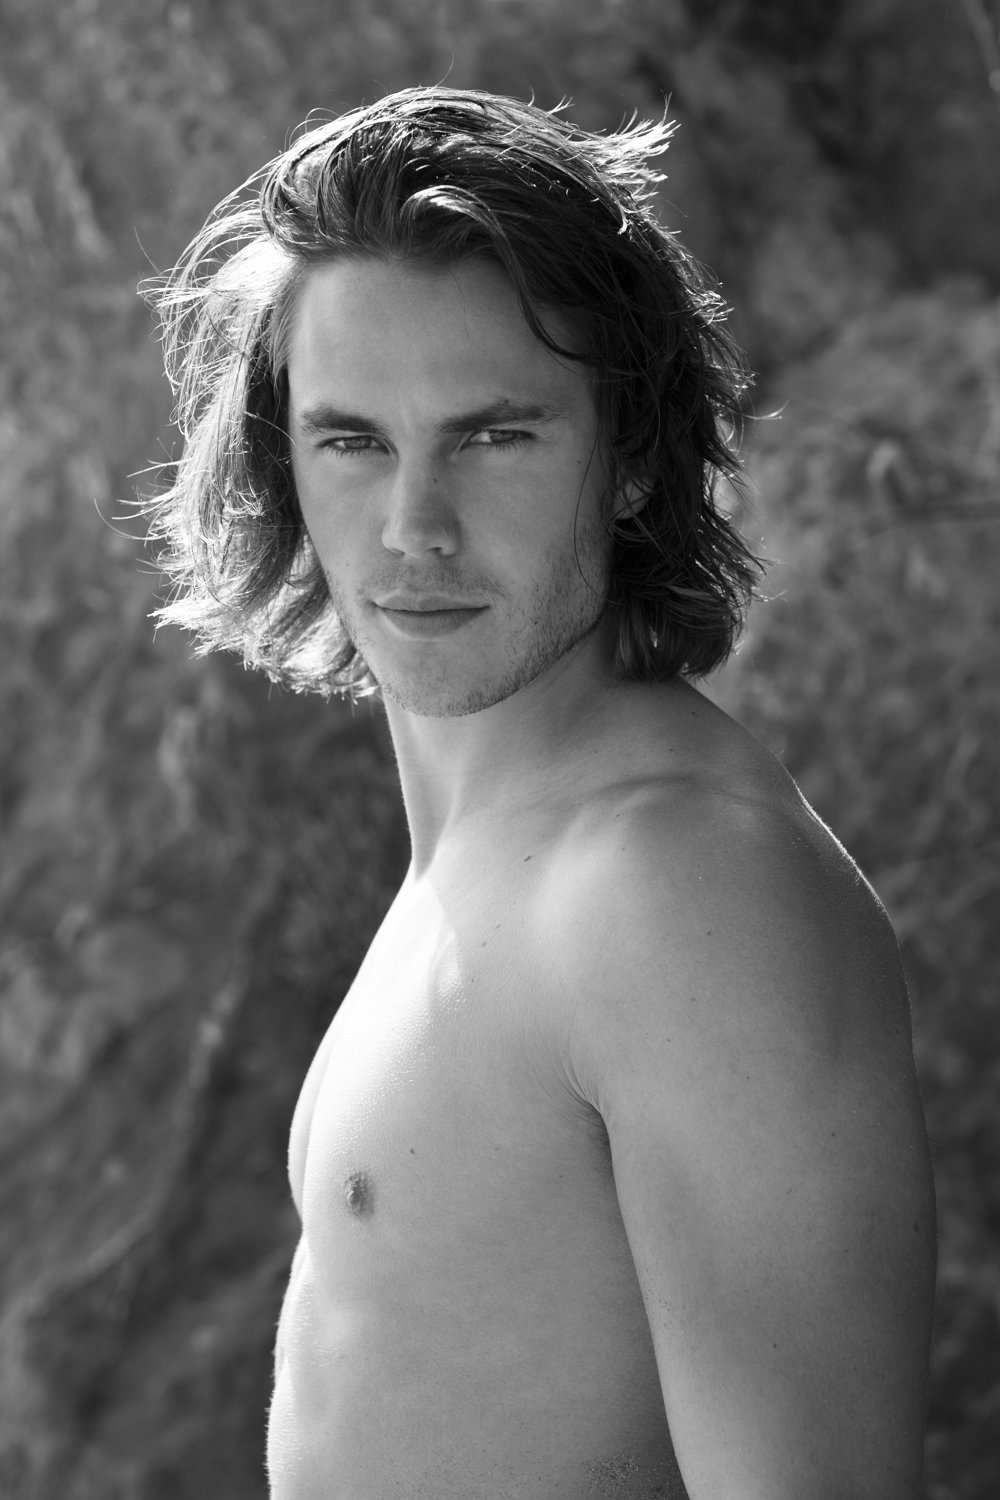 Taylor Kitsch. pic id: 207984